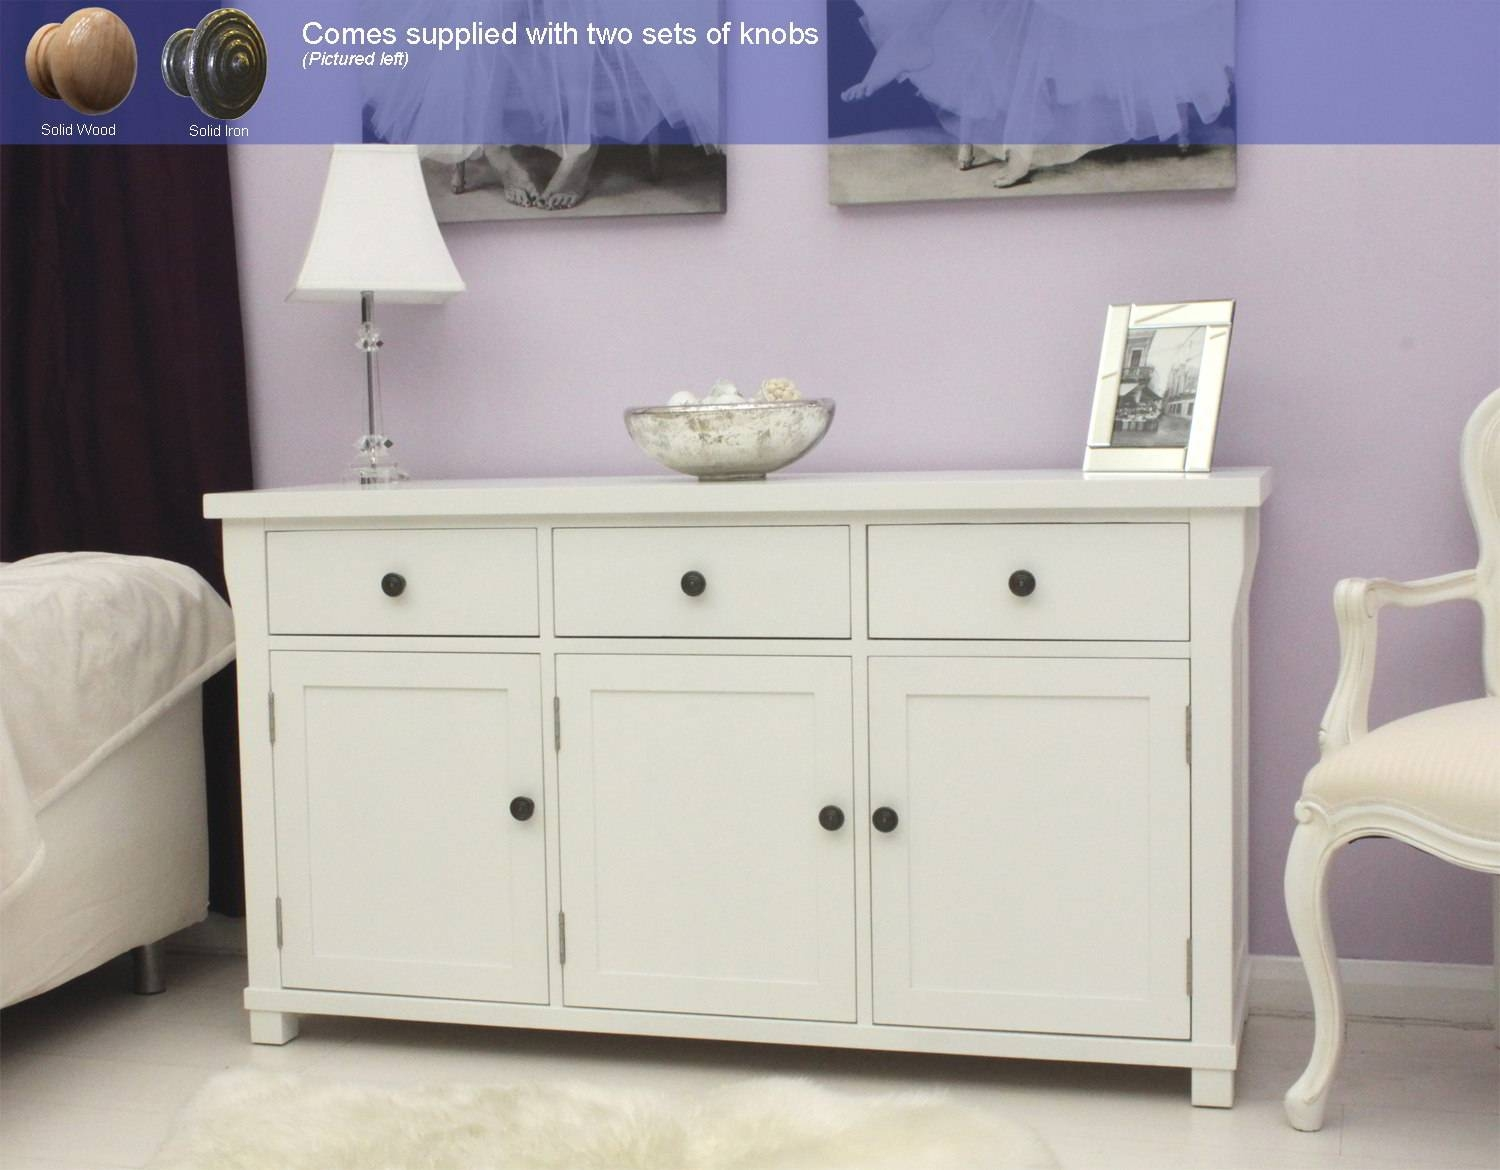 Dining Room Sideboard White | Home Decor & Renovation Ideas